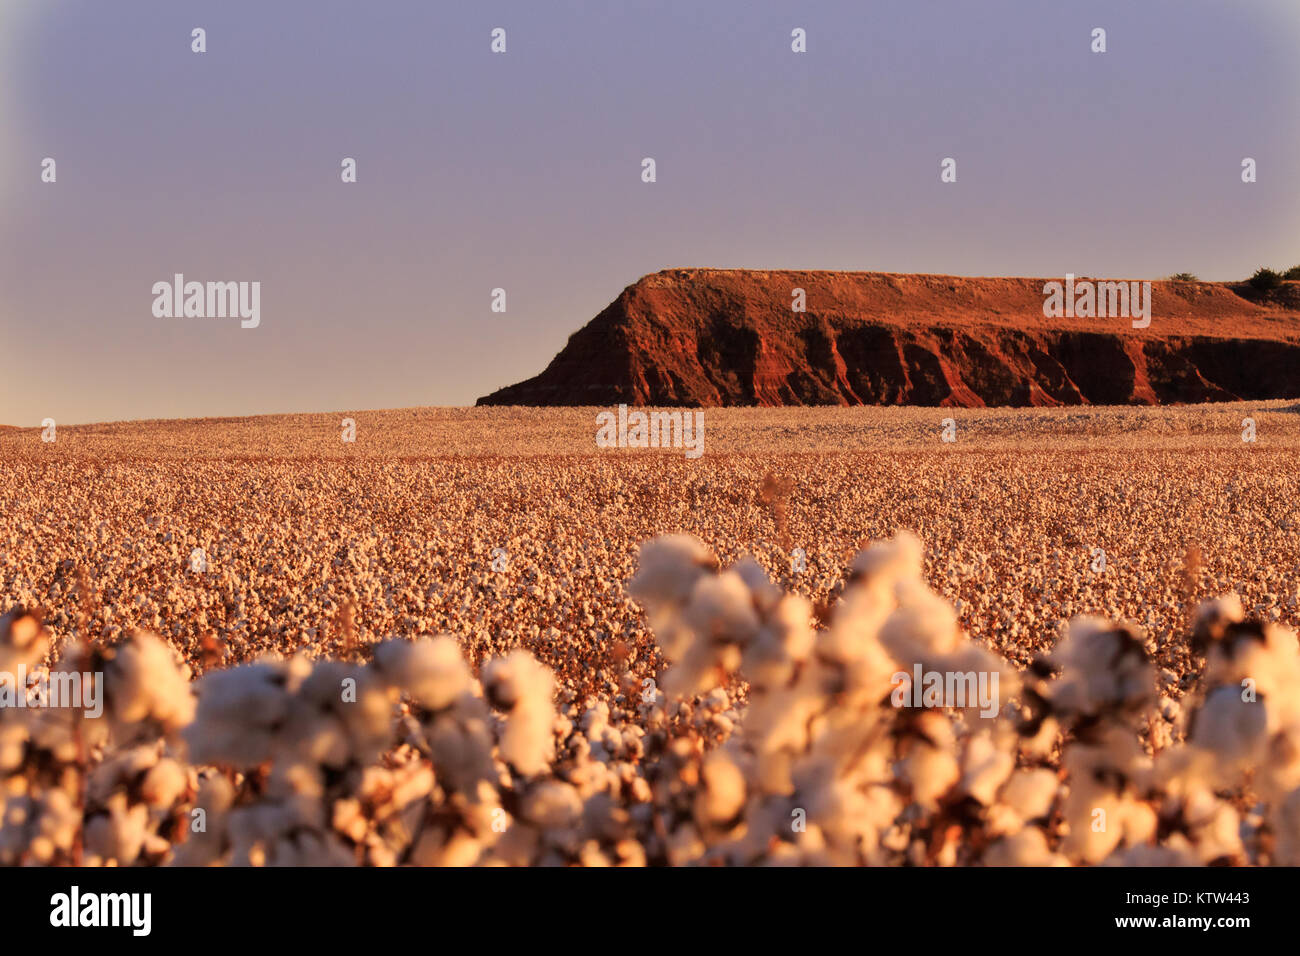 A Plateau in Fairview, Oklahoma surrounded by a fluffy field of cotton 2017 Stock Photo